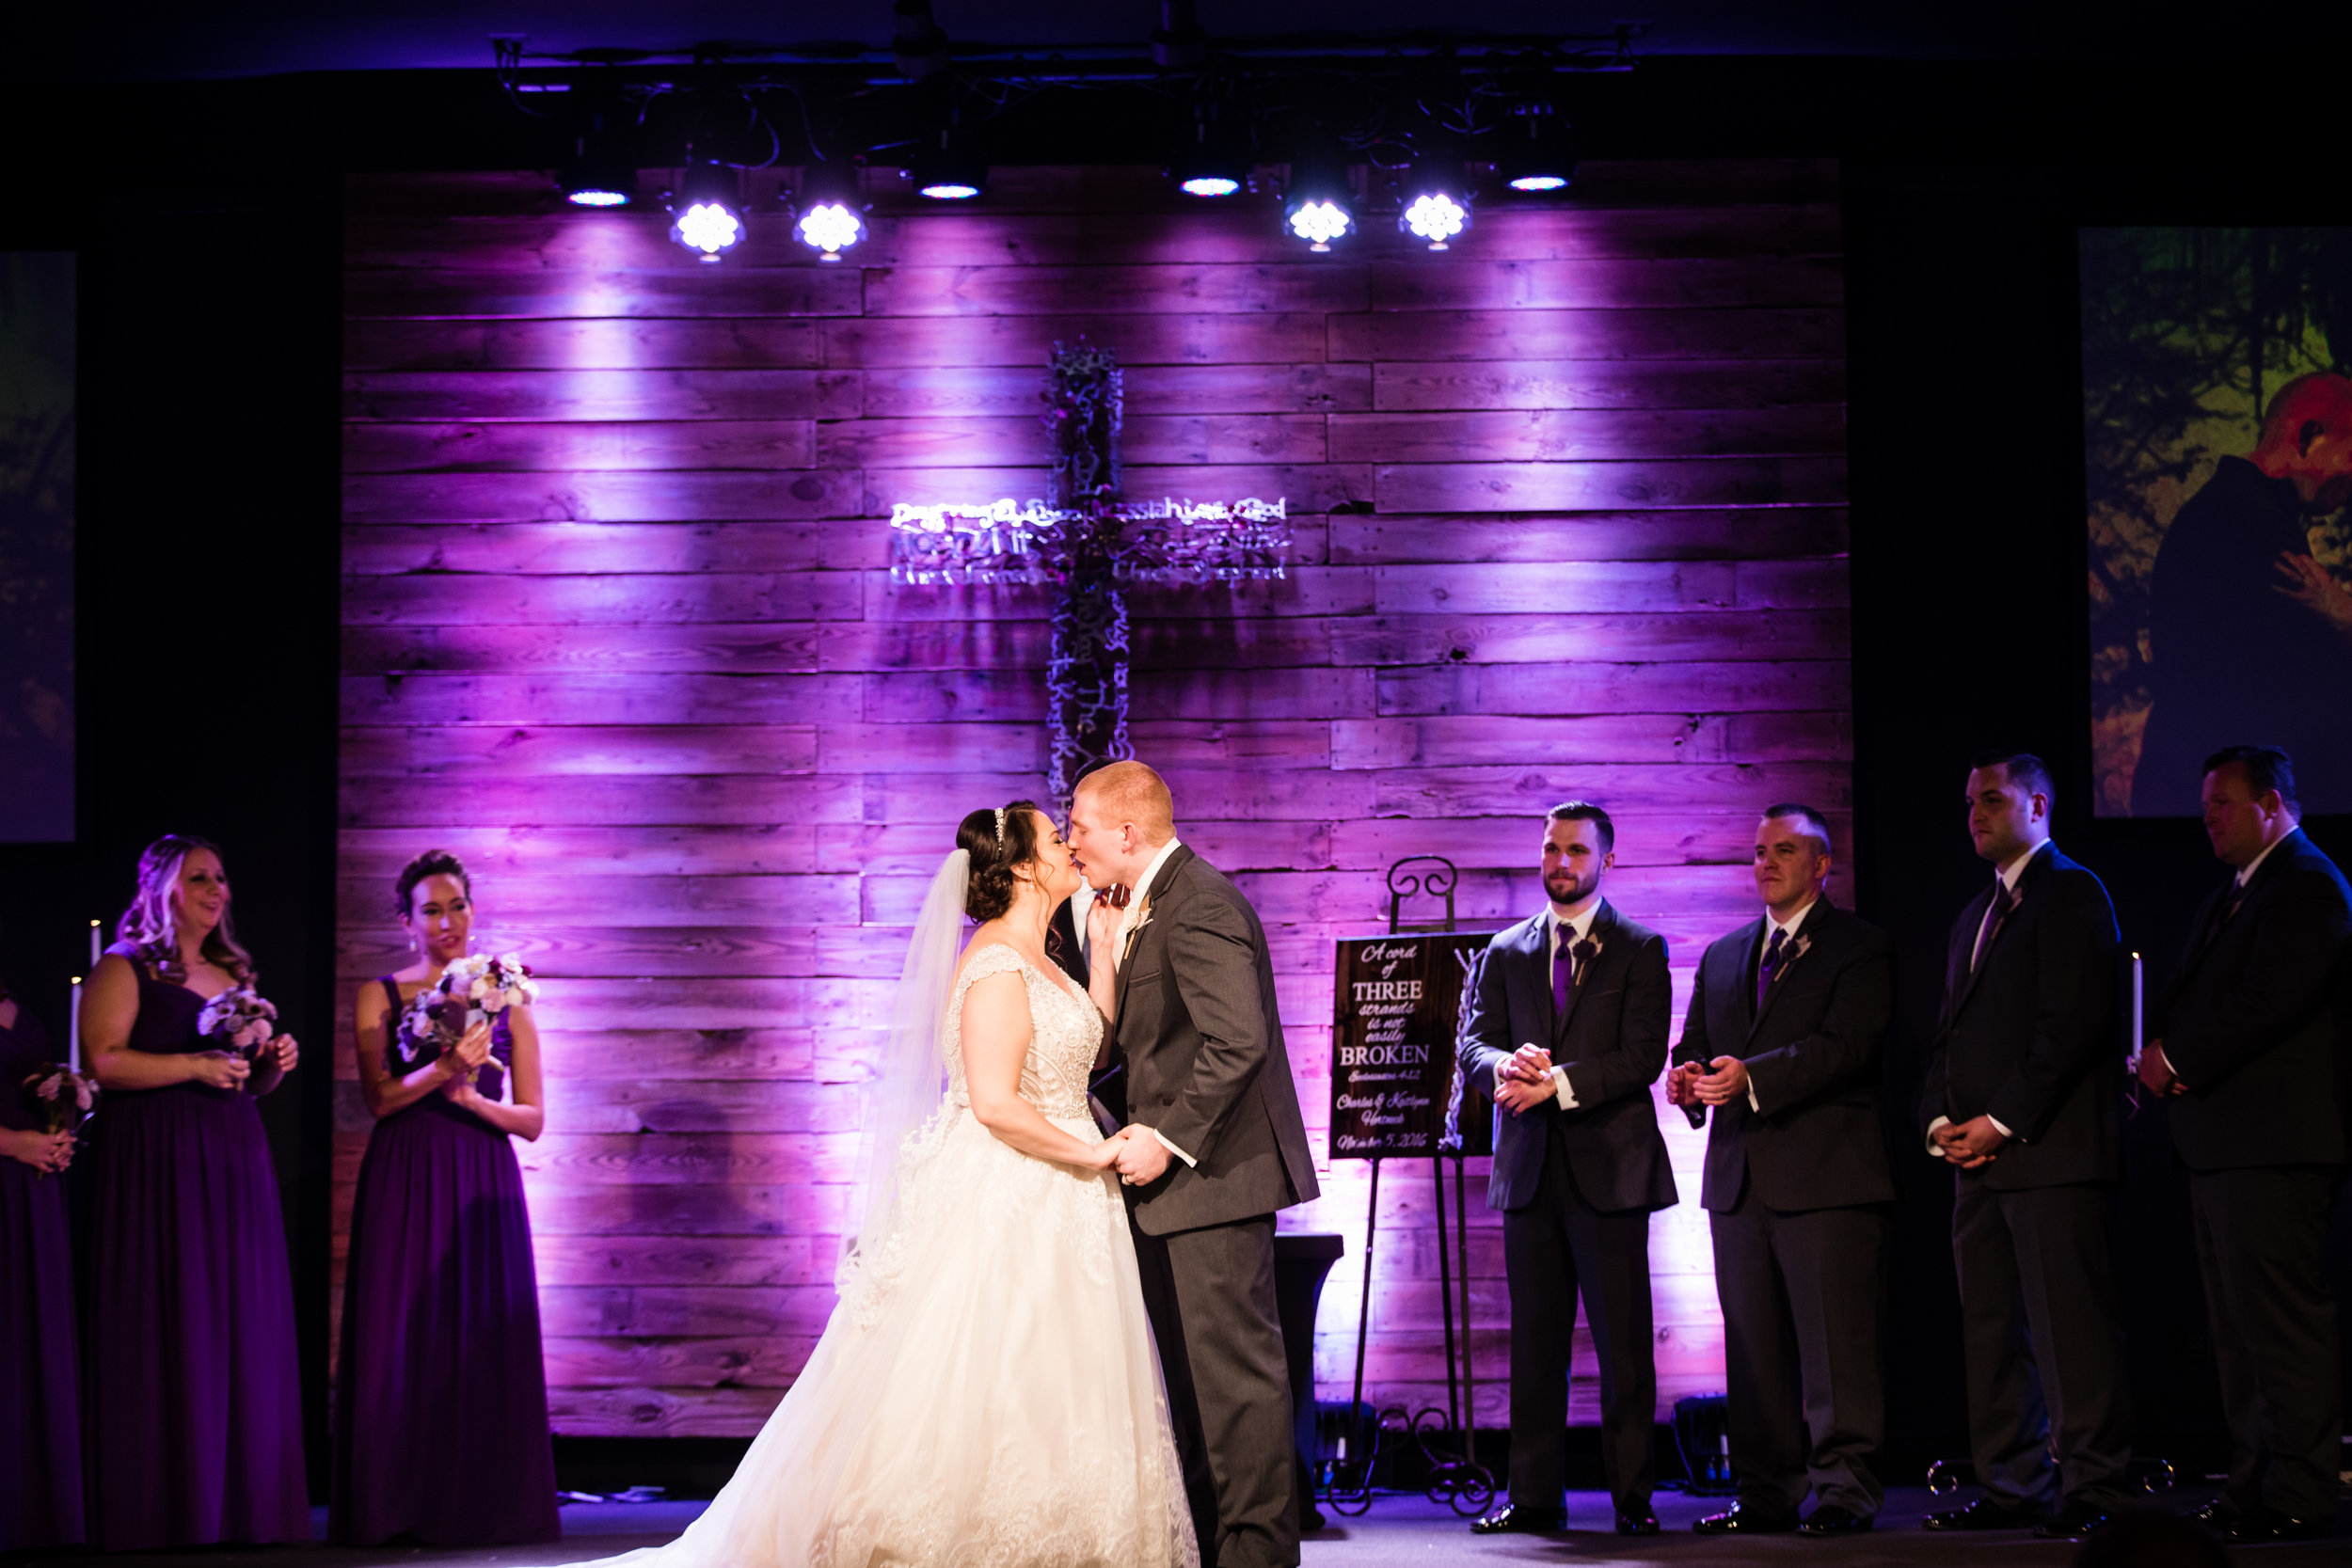 scotlandrunweddingfallsouthjerseyweddingphotographer-10.jpg